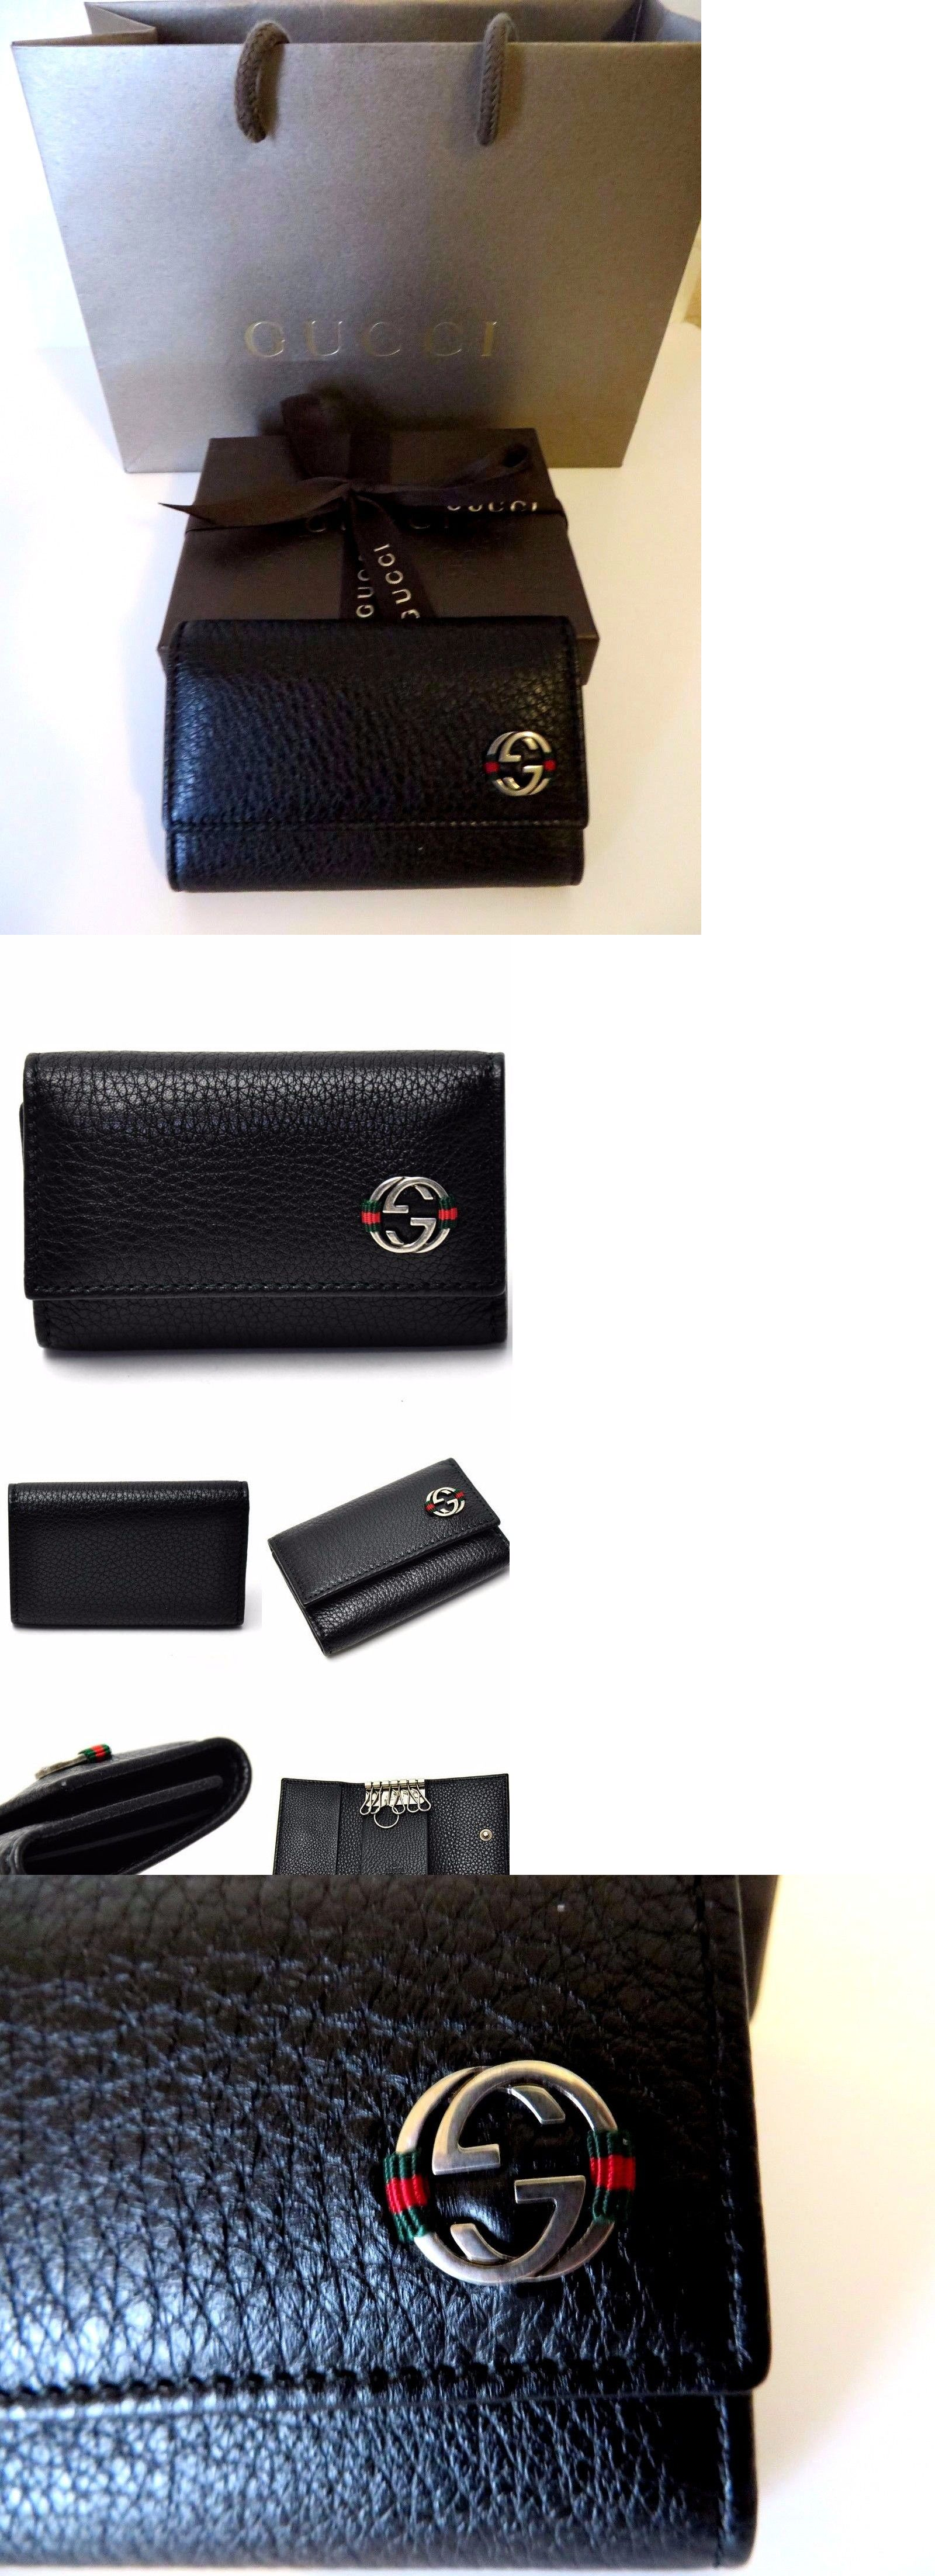 c8885333c4bf Other Mens ID and Doc Holders 169272: Gucci Men S New Leather Key Case Card  Holder 100% Authentic,Gucci Box Bag -> BUY IT NOW ONLY: $189 on eBay!